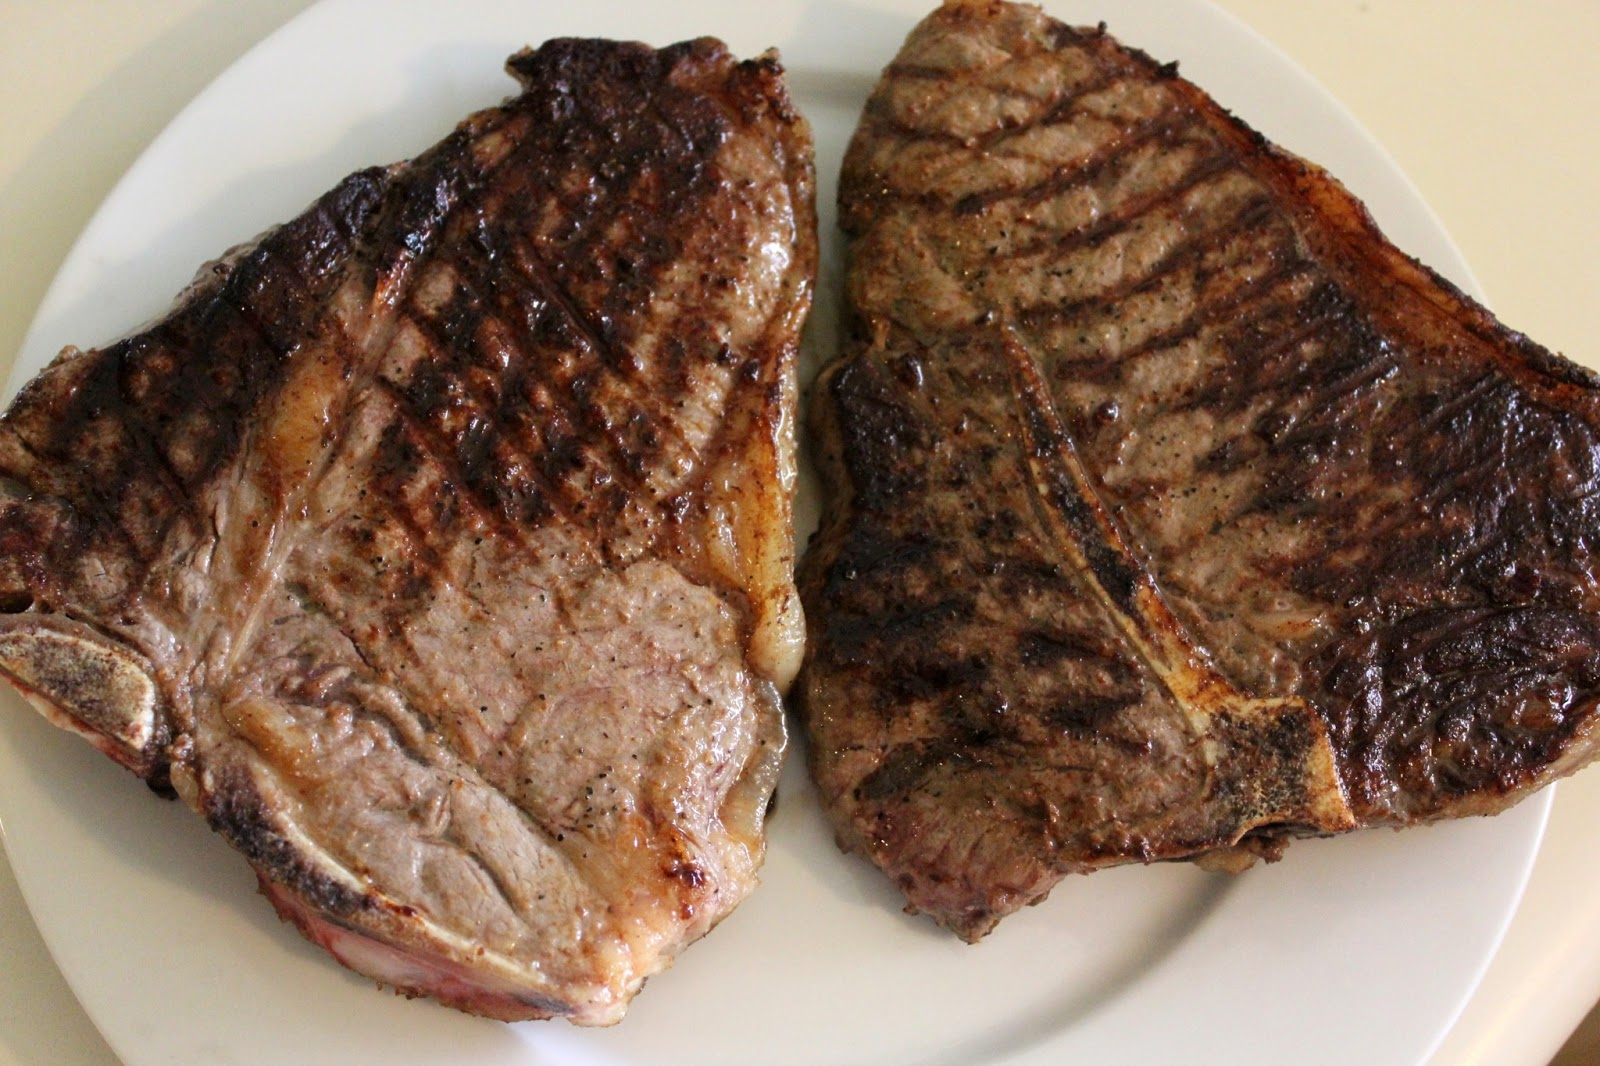 ... more delicious! There you have it! Now, go enjoy your perfect steak